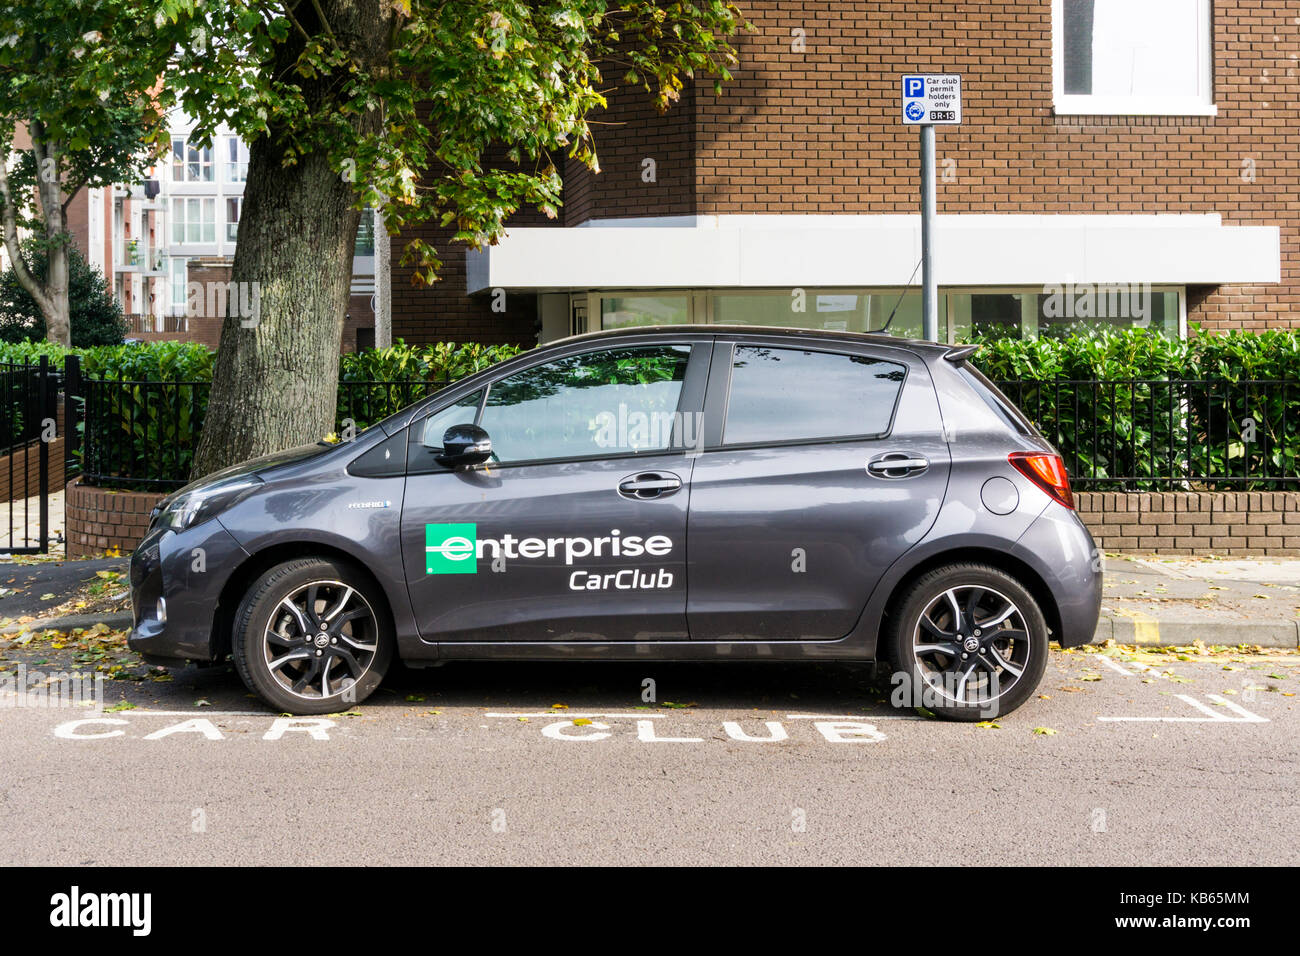 Enterprise Car Club Stock Photos & Enterprise Car Club